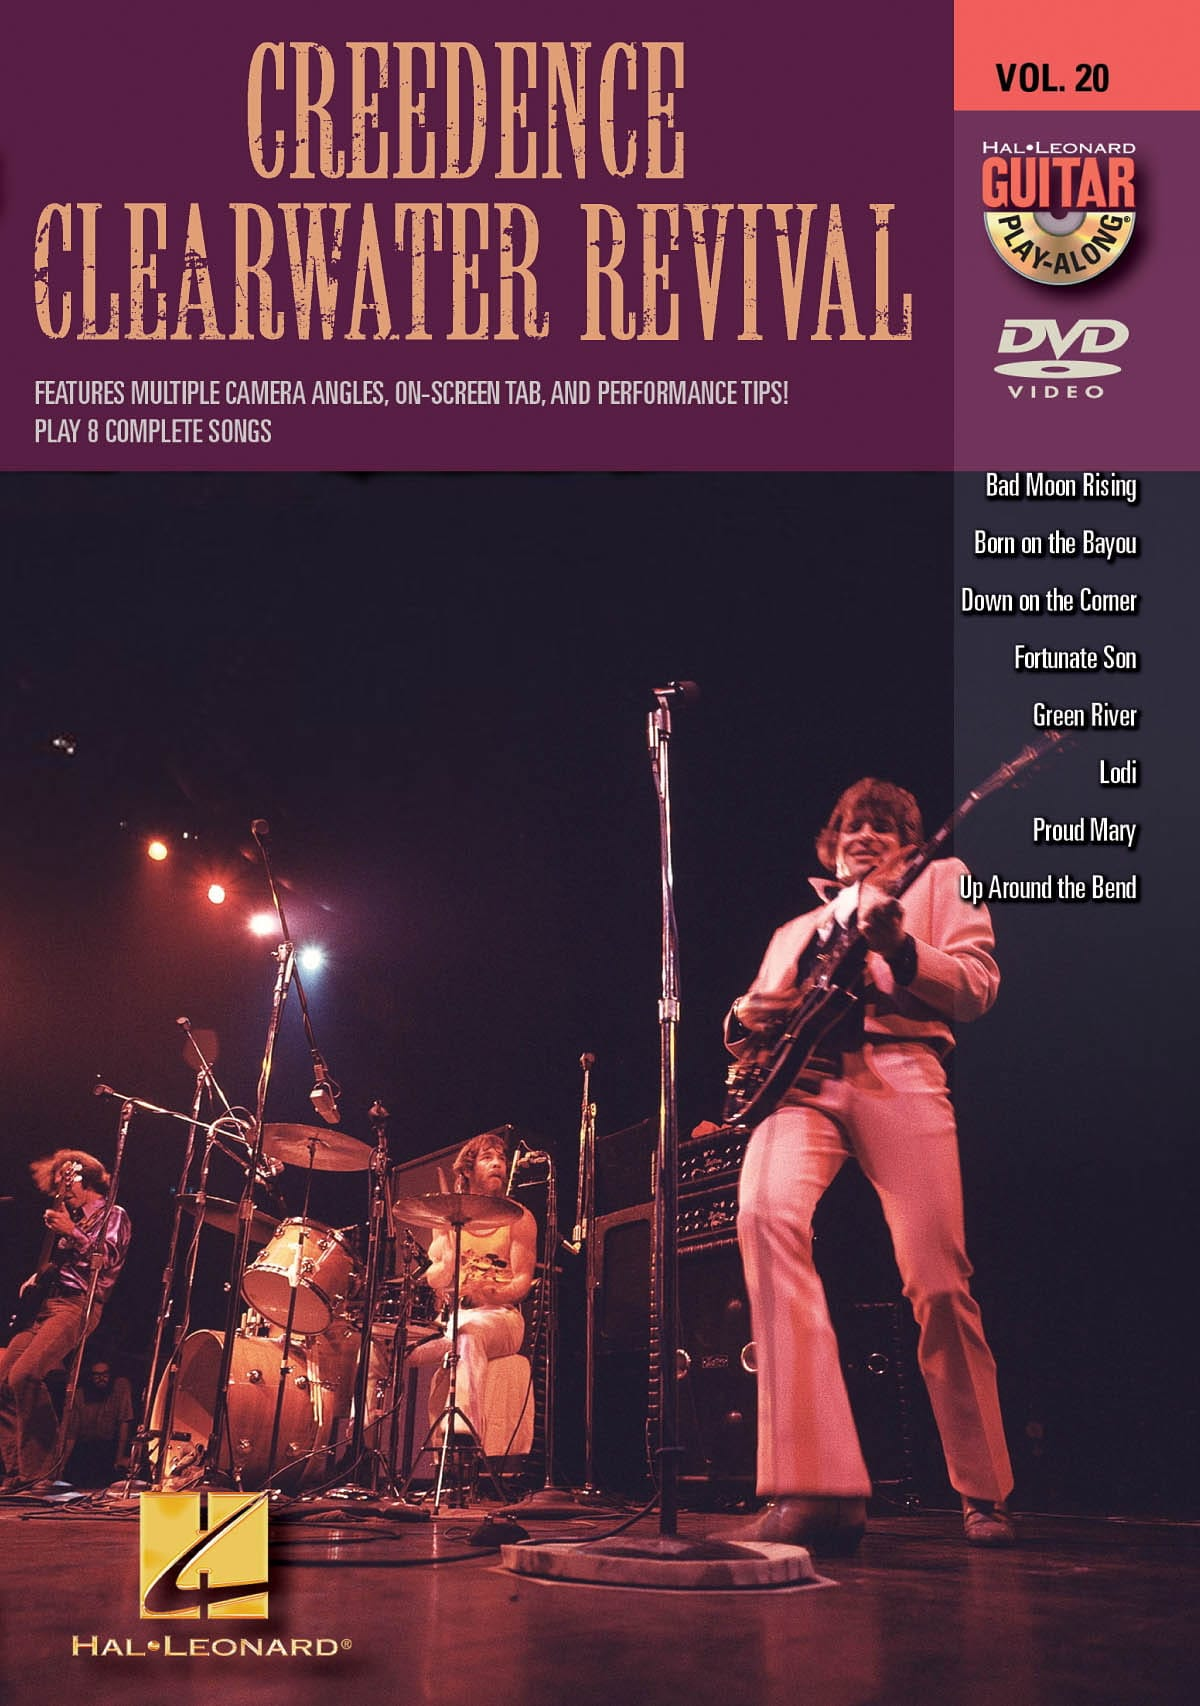 Clearwater Revival Creedence - DVD - Creedence Clearwater Revival Volume 20 - Partition - di-arezzo.co.uk